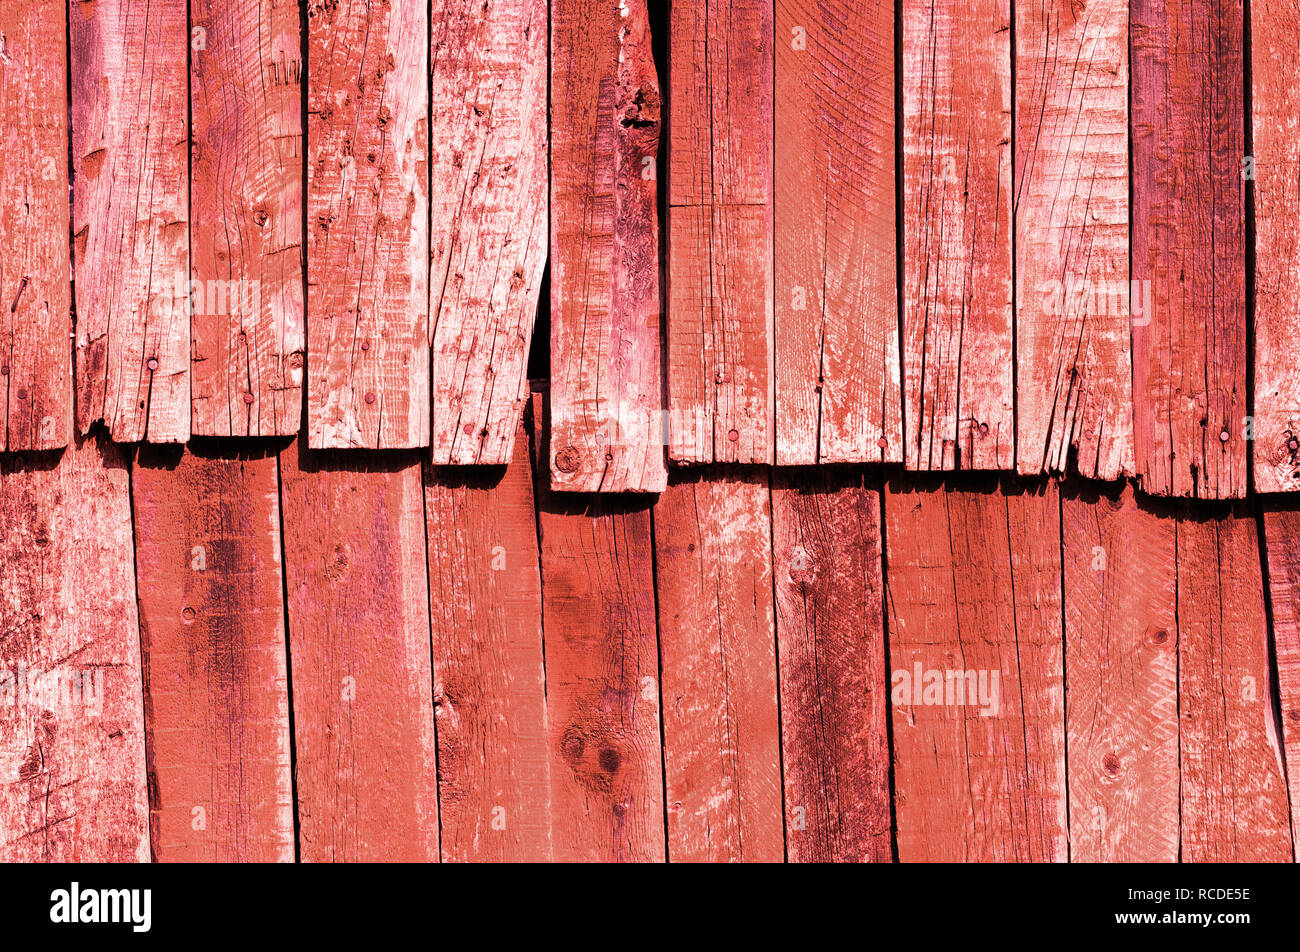 Old antique coral wooden groung the background,rustic wall or table - Stock Image